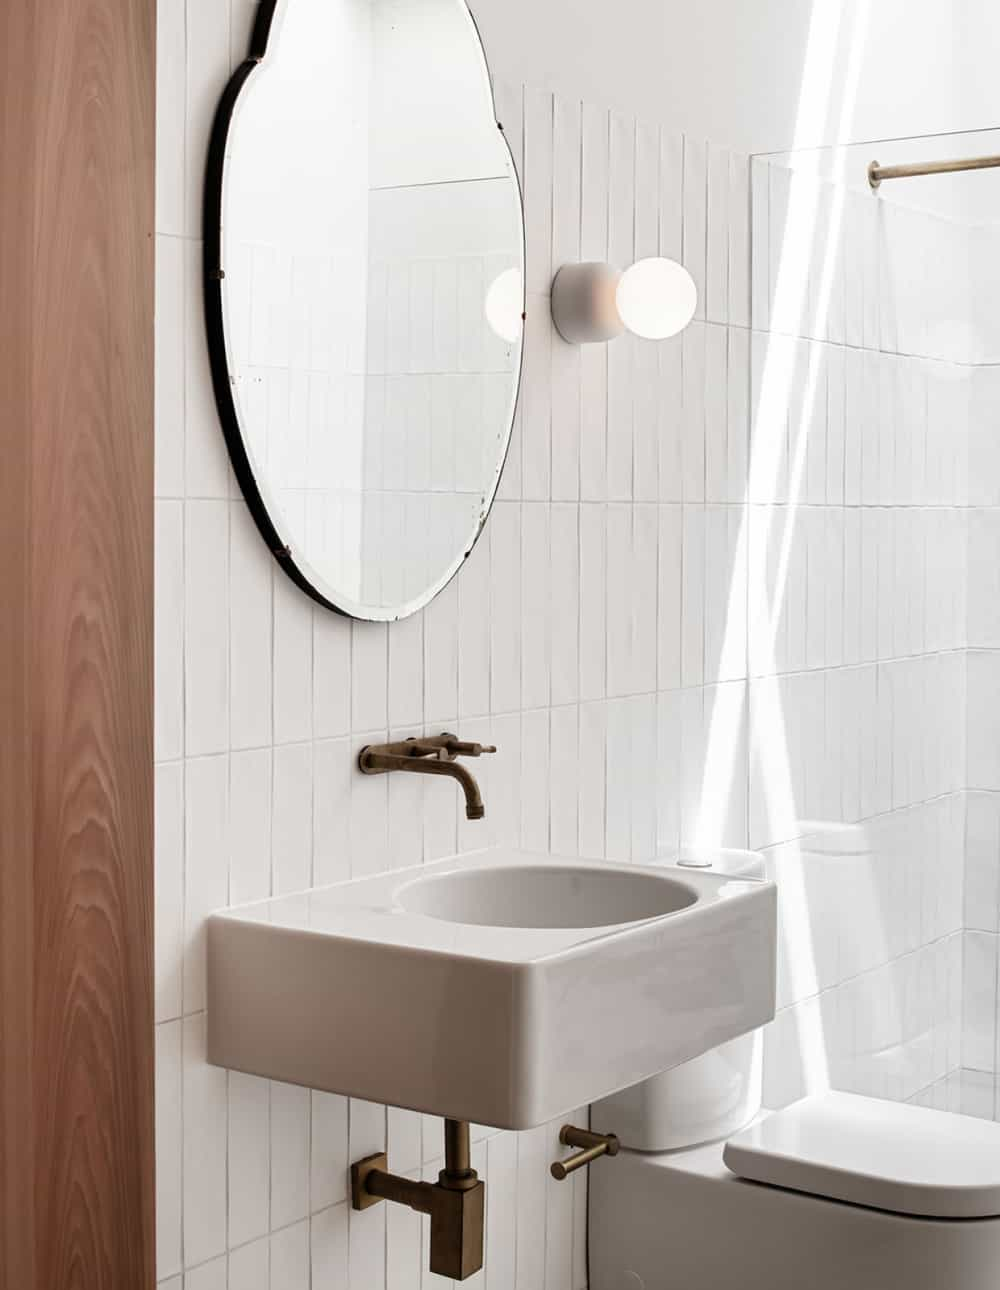 this is a bathroom with white tiles